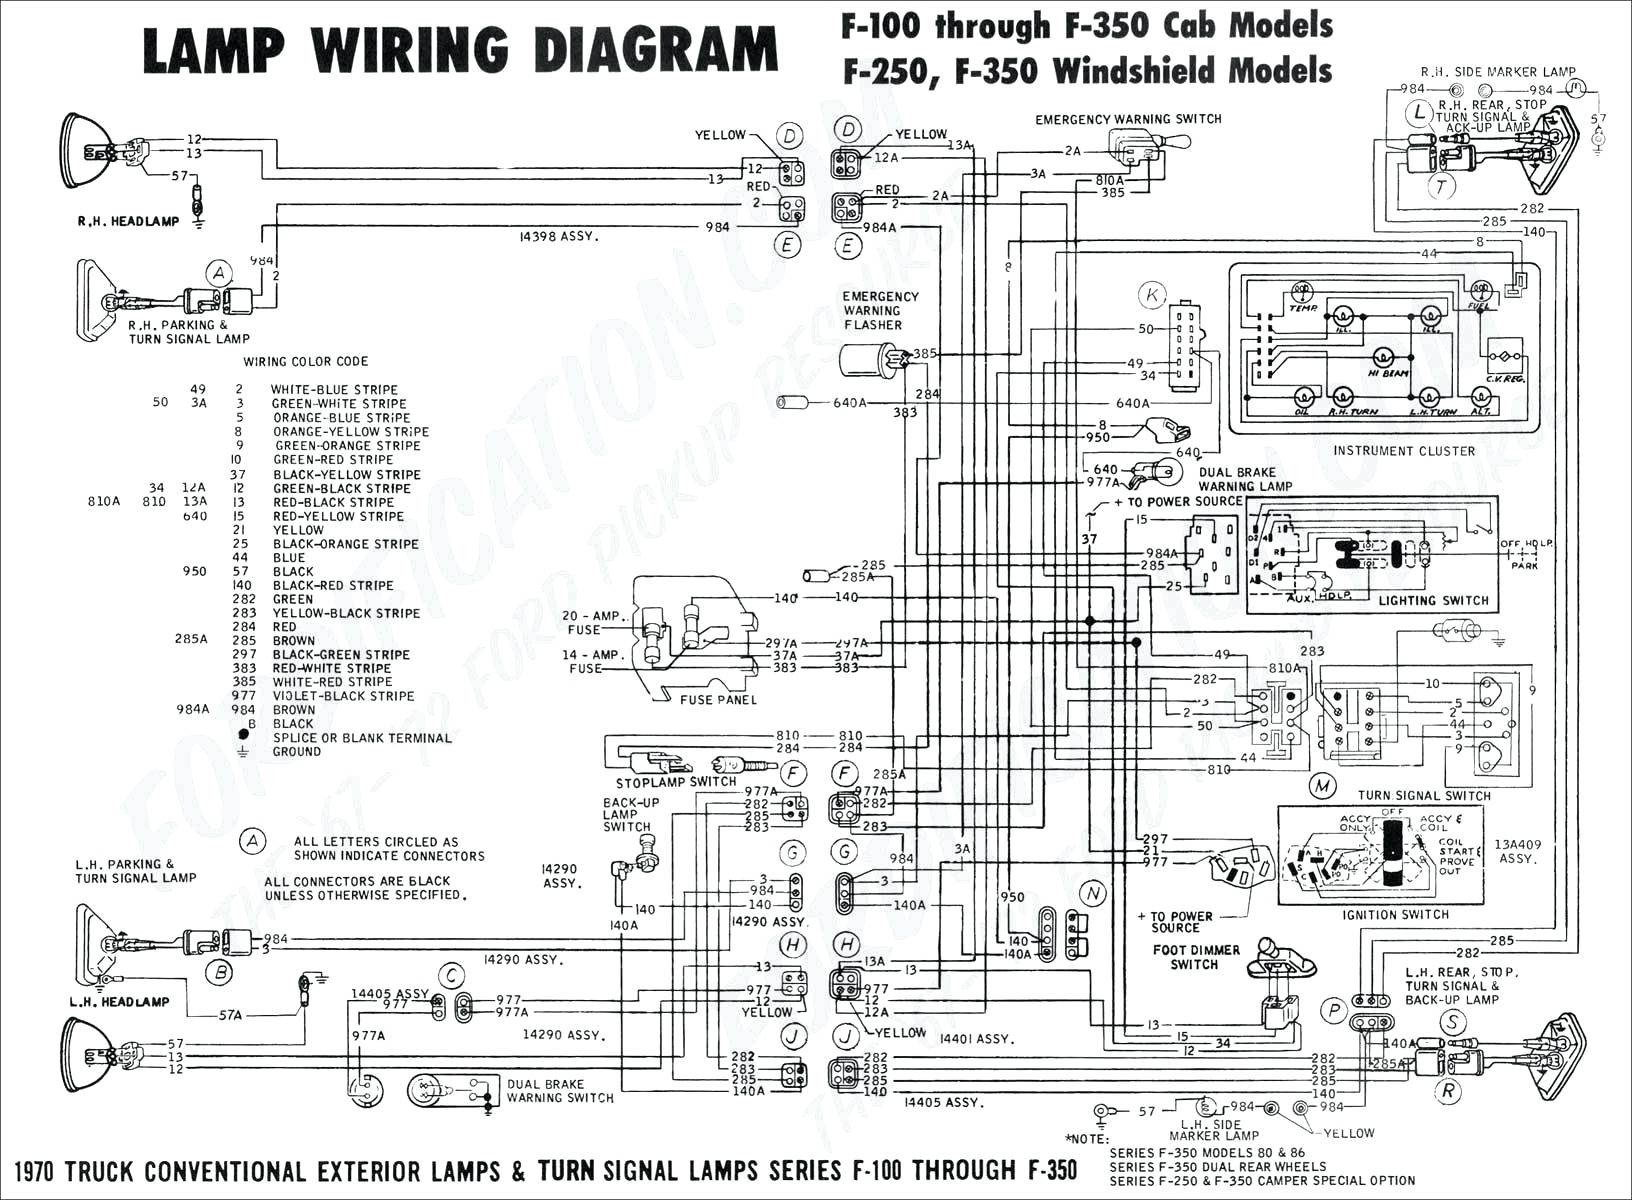 2001 Ford F350 Wiring Schematic - Wiring Diagrams Thumbs - Trailer Wiring Diagram Ford